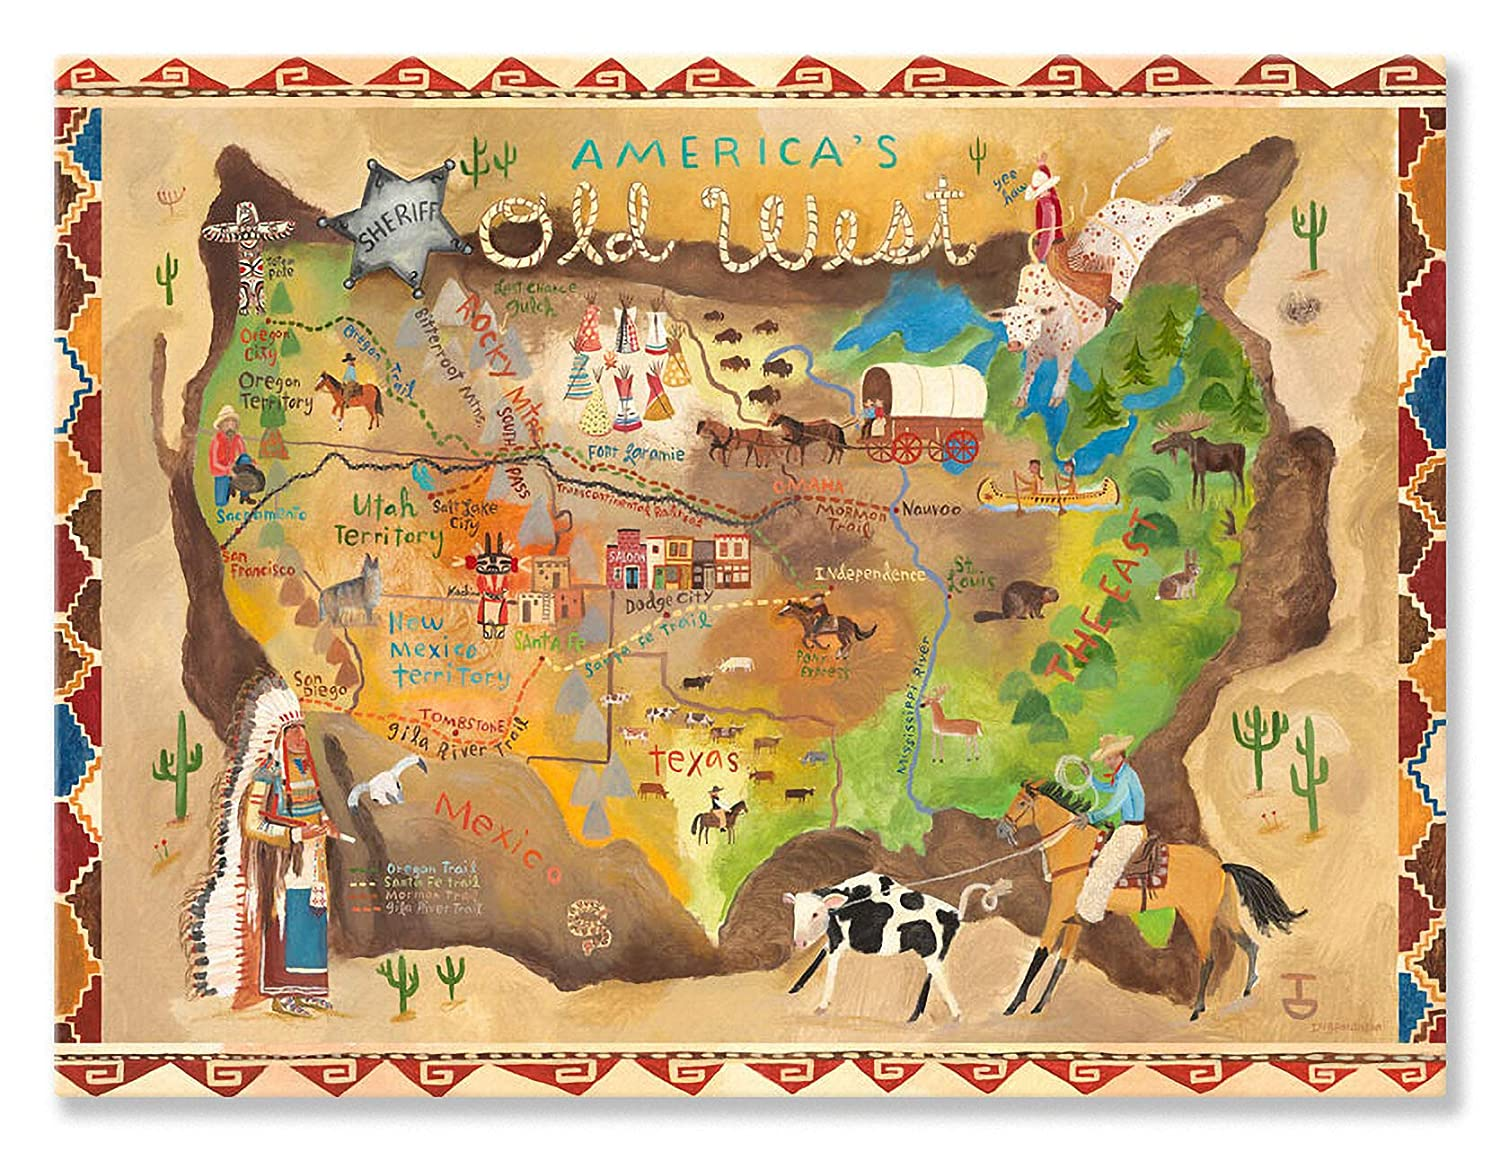 Oopsy Daisy America 's Old Old America Westストレッチキャンバス壁アートby Donna 's Ingemanson 24 by 18-Inch PE0853 24 by 18-Inch B0058U1N3A, 南青山Flower&Aroma:86a23f8e --- ijpba.info